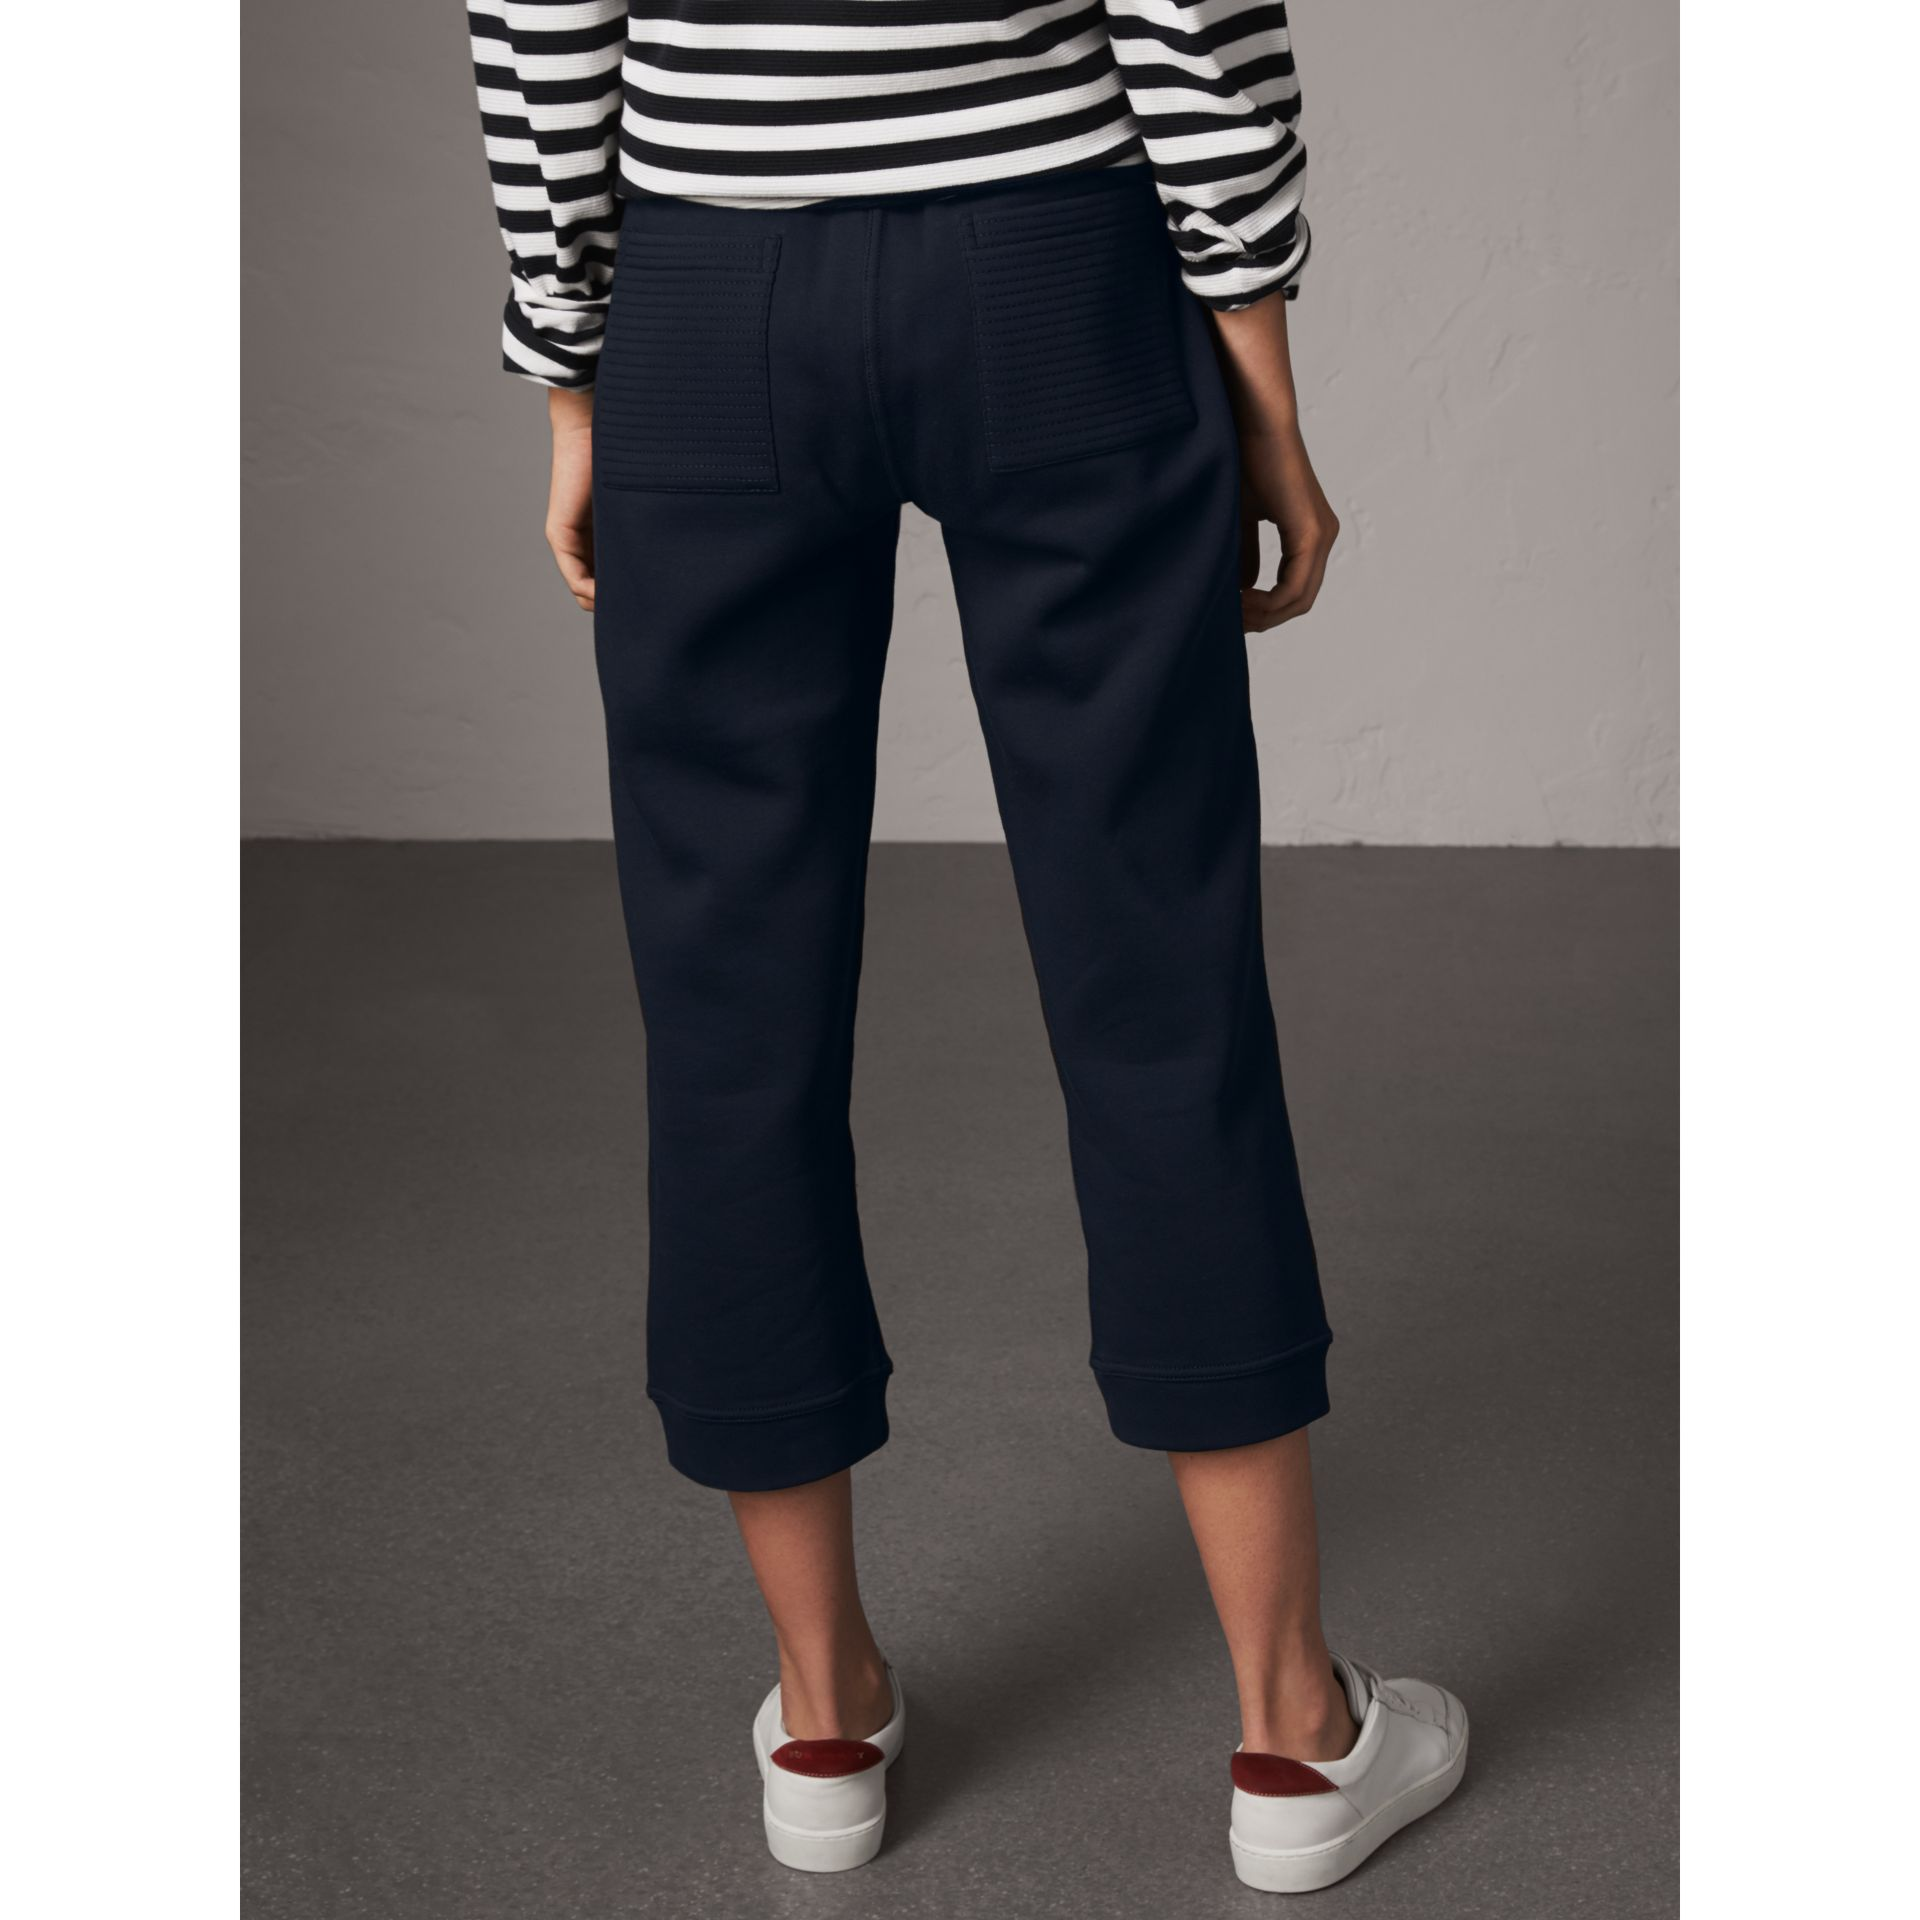 Pantalon de survêtement 7/8 en jersey (Marine) - Femme | Burberry - photo de la galerie 3